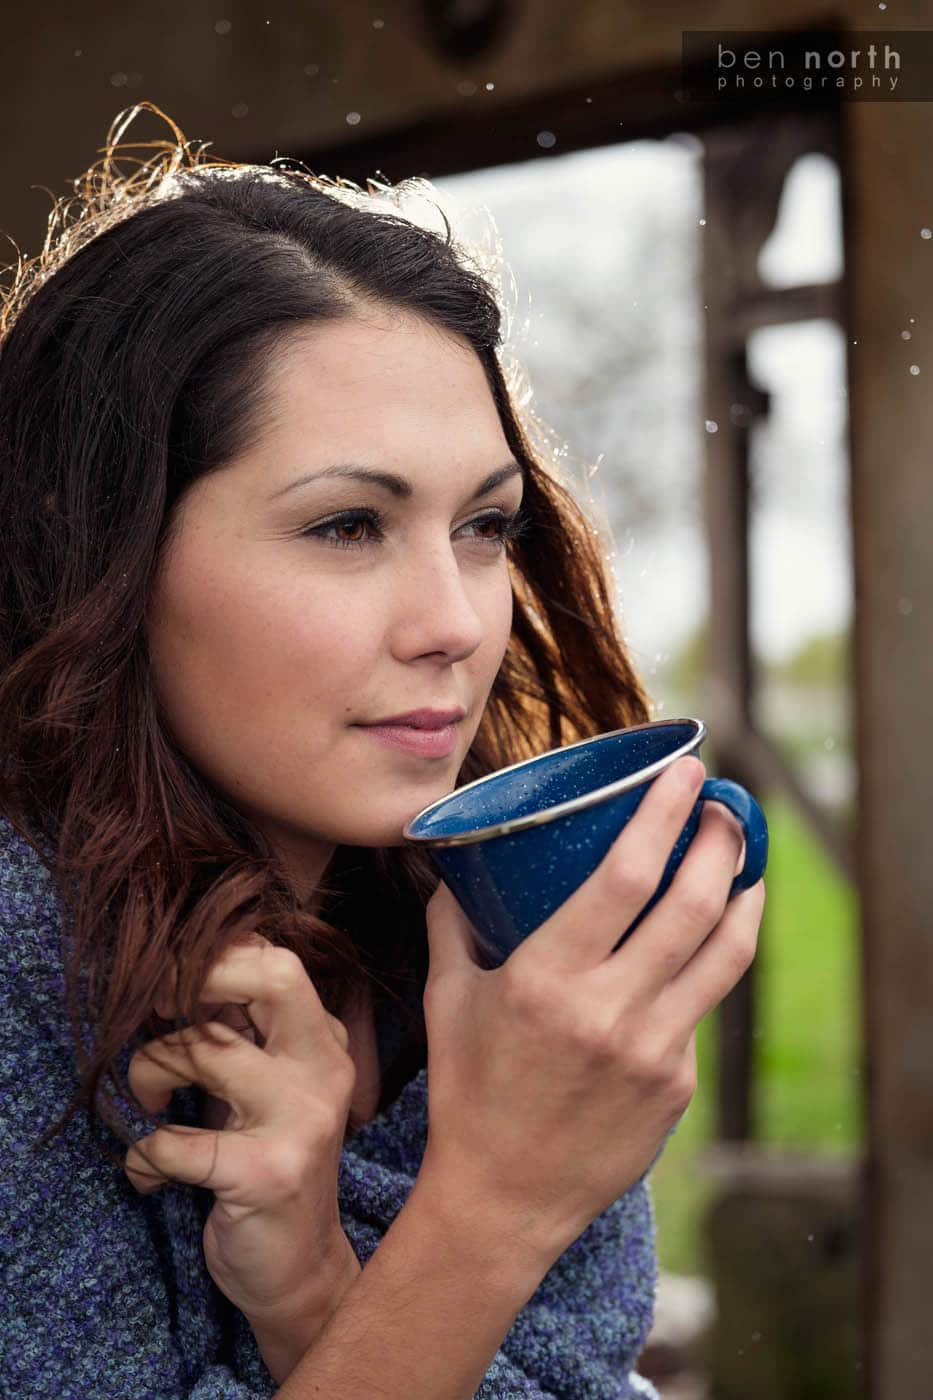 Woman drinking coffee on a farm first thing in the morning.